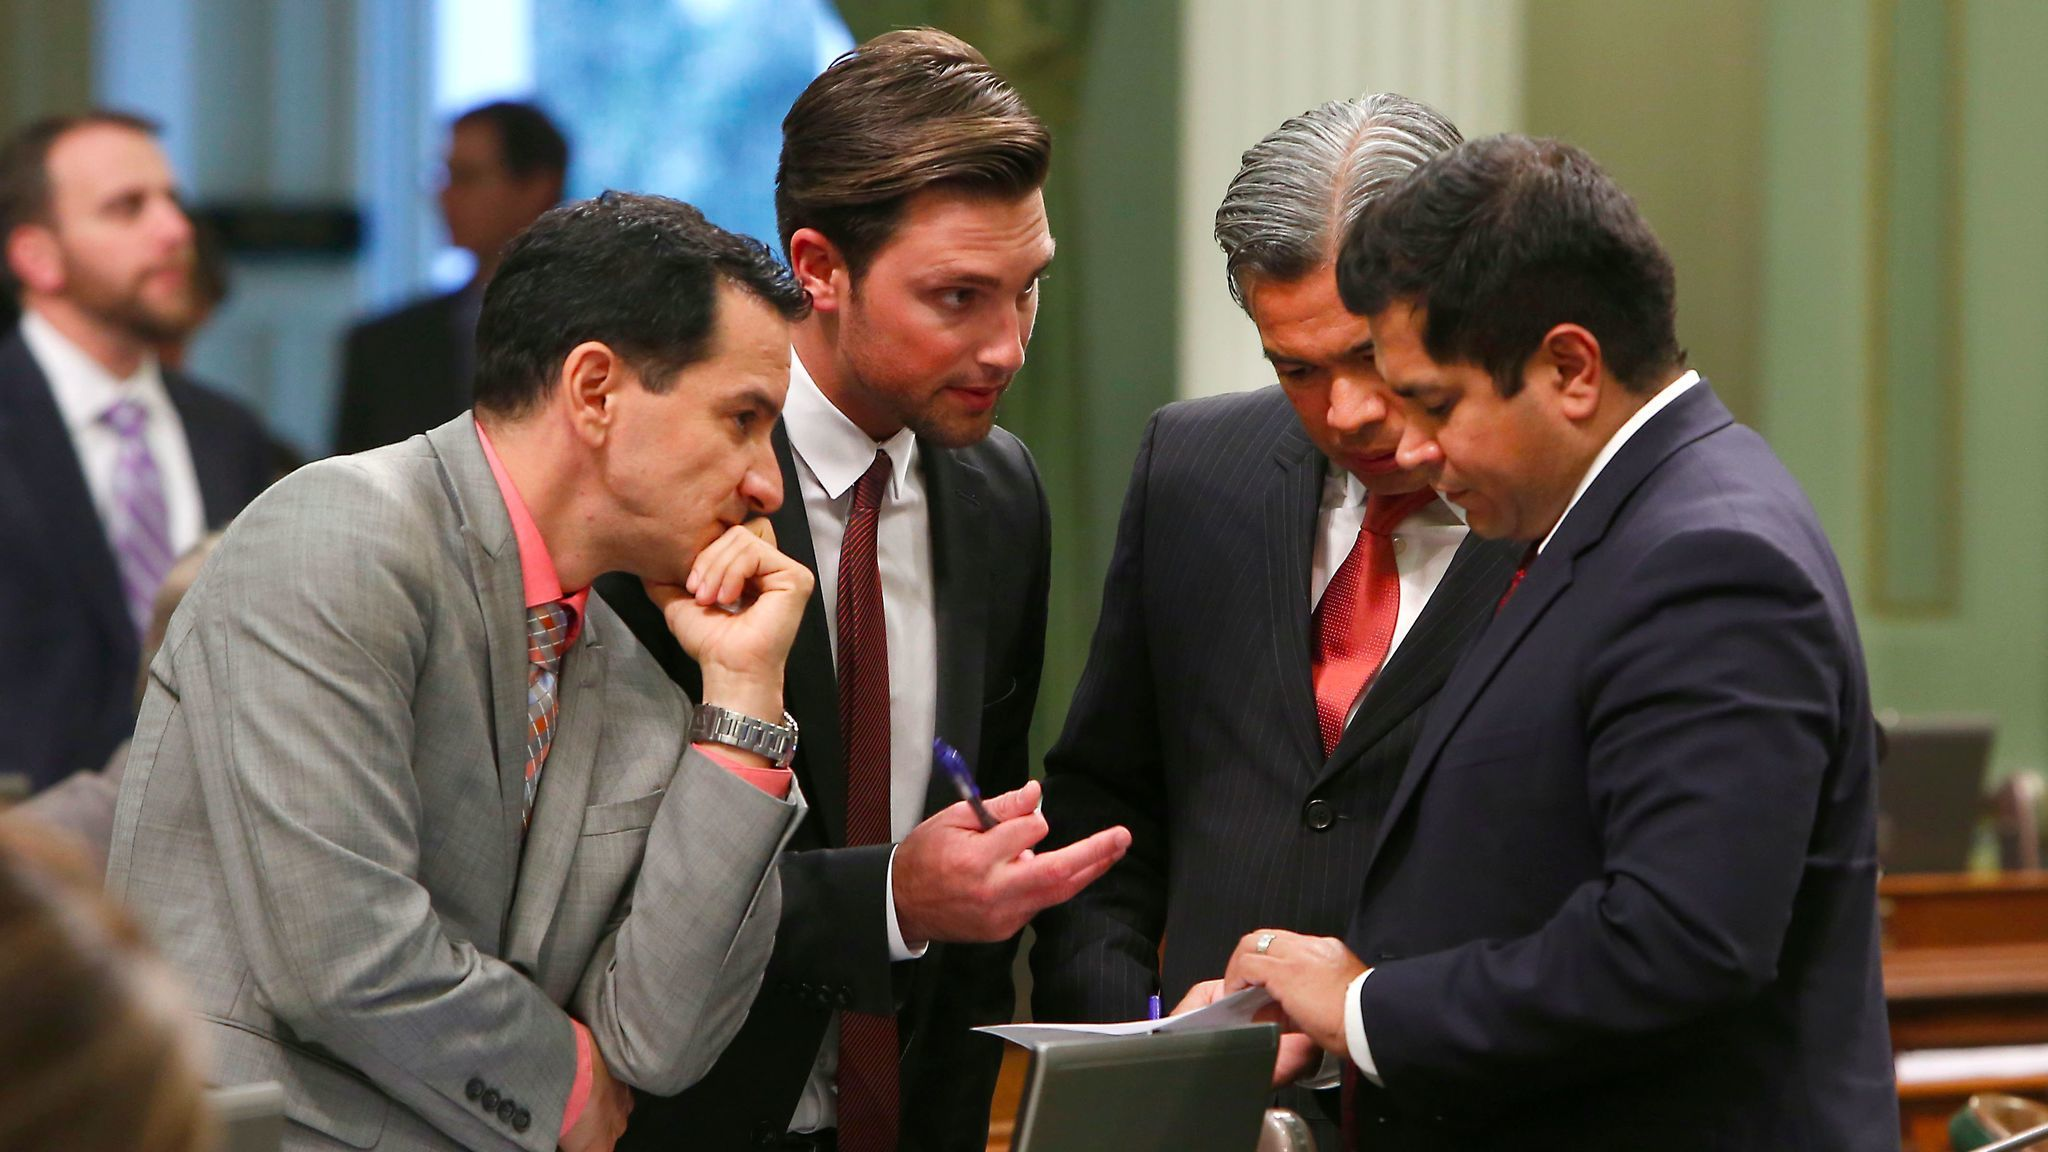 Democratic Assembly members, from left, Anthony Rendon, Ian Calderon, Rob Bonta and Jimmy Gomez huddle during the 2015 session.